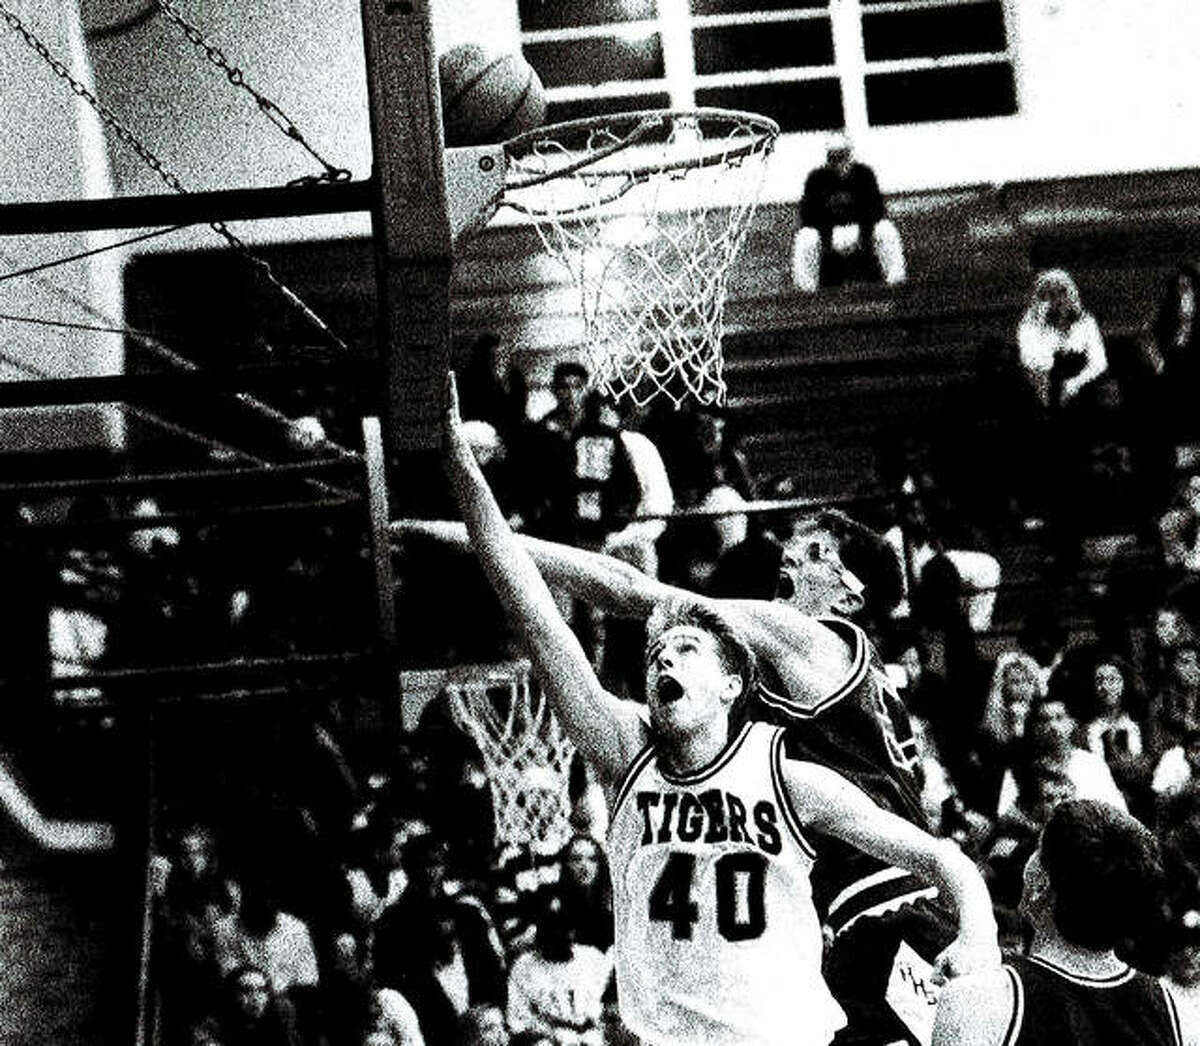 Edwardsville's Chris Wright, a 1995 EHS graduate, makes a layup during his playing days at EHS.